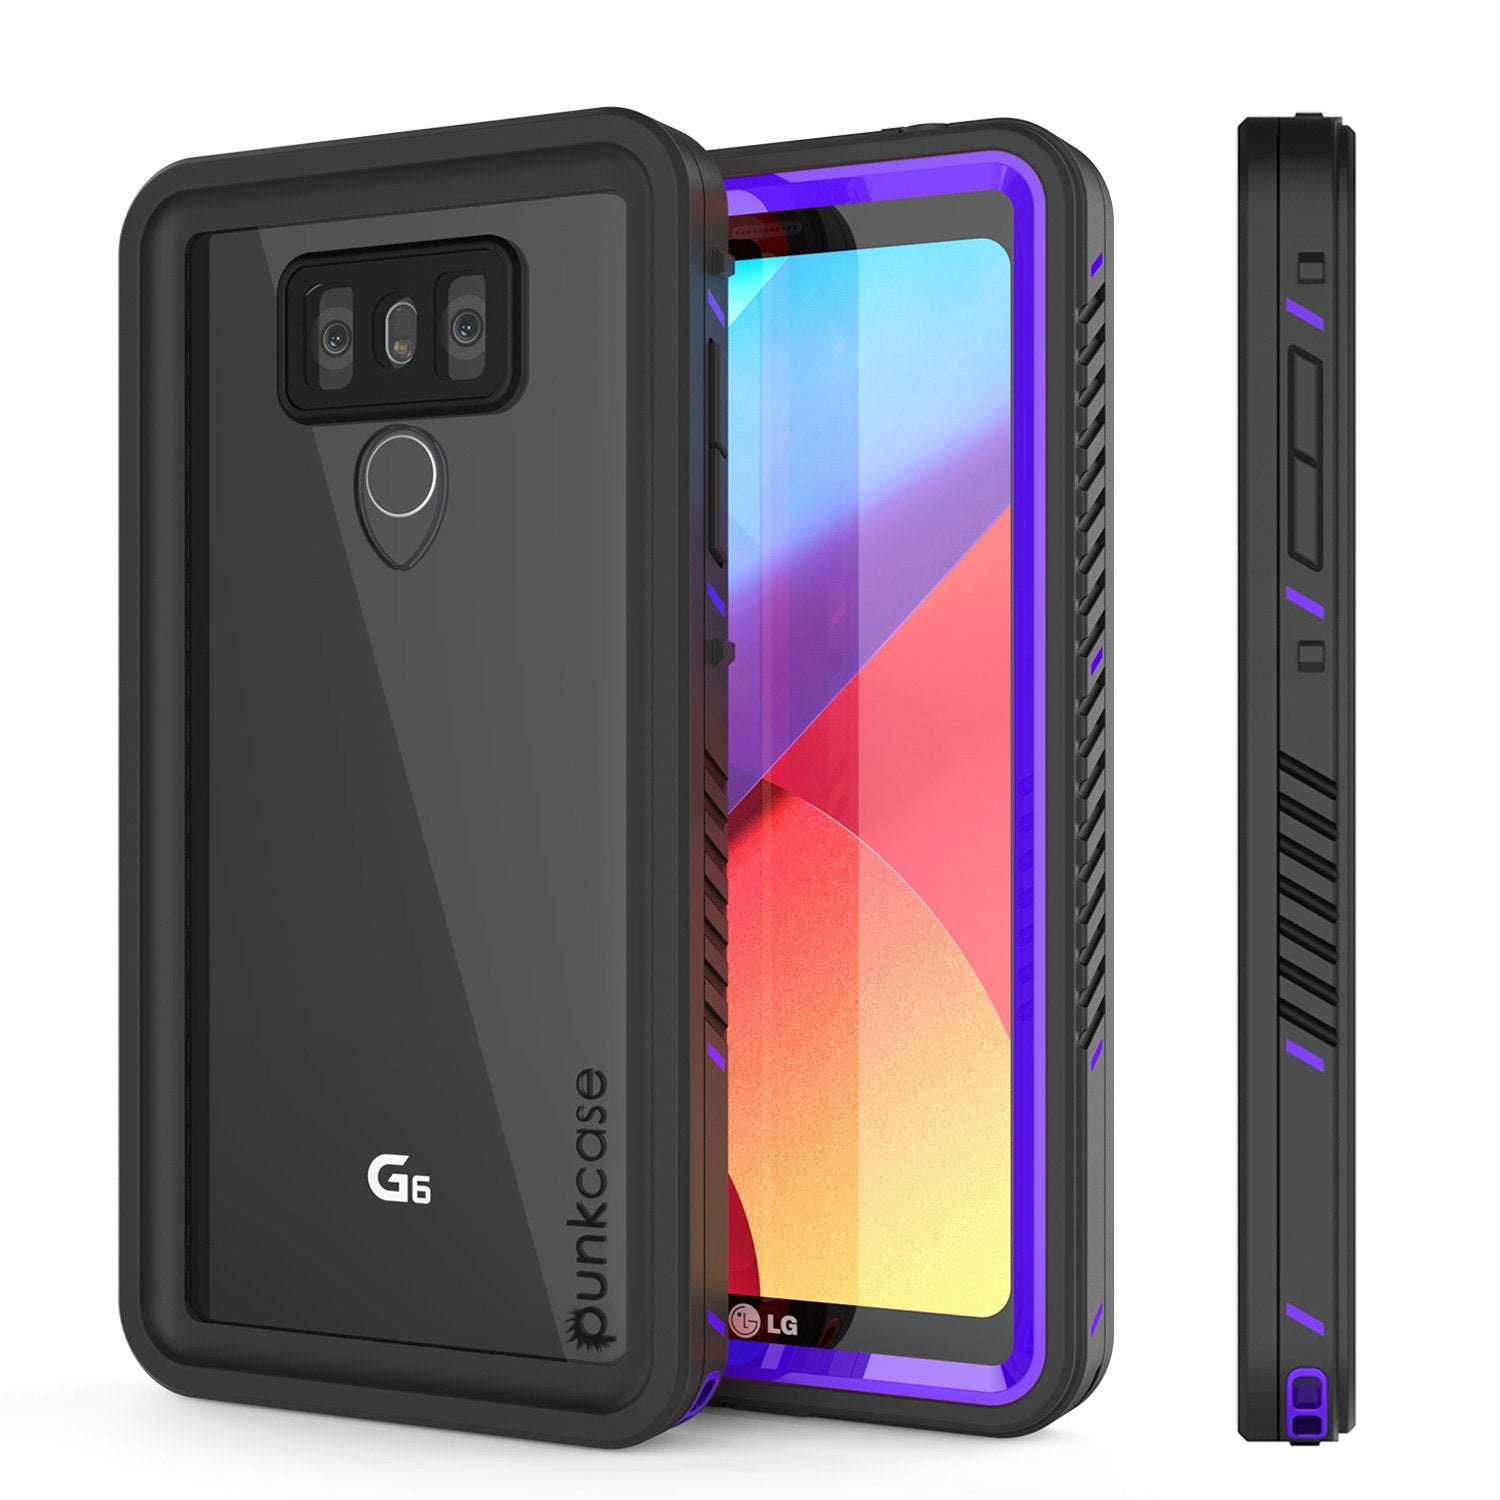 LG G6 Waterproof Case, Punkcase [Extreme Series] [Slim Fit] [IP68 Certified] [Shockproof] [Snowproof] [Dirproof] Armor Cover W/ Built In Screen Protector for LG G6 [PURPLE]